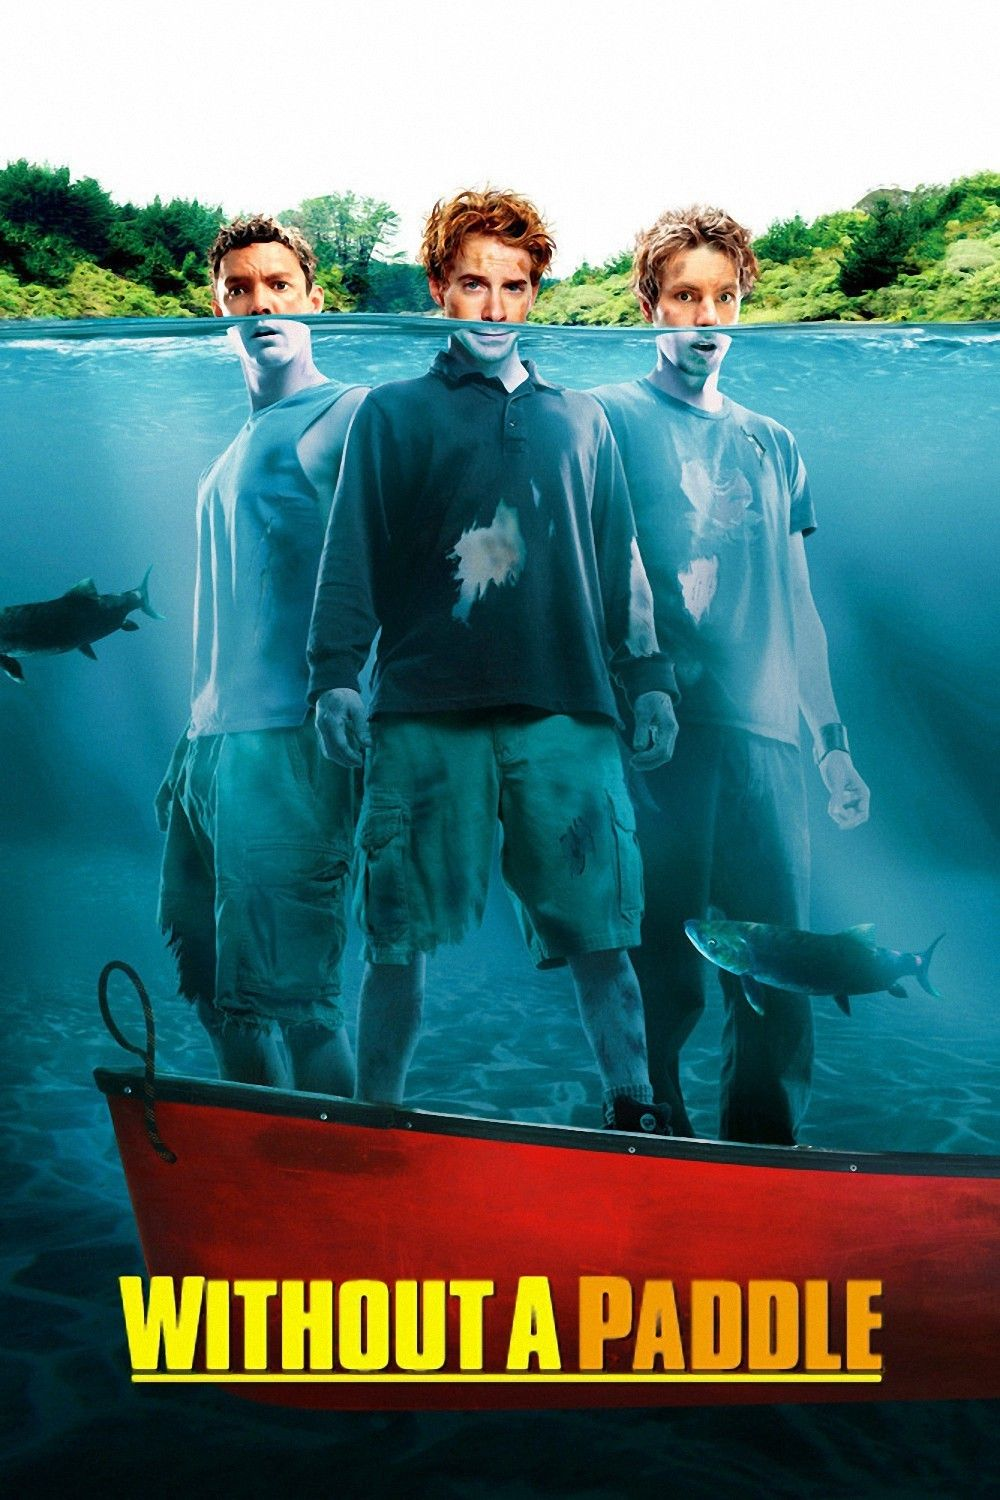 Pin On Camping Movie Posters